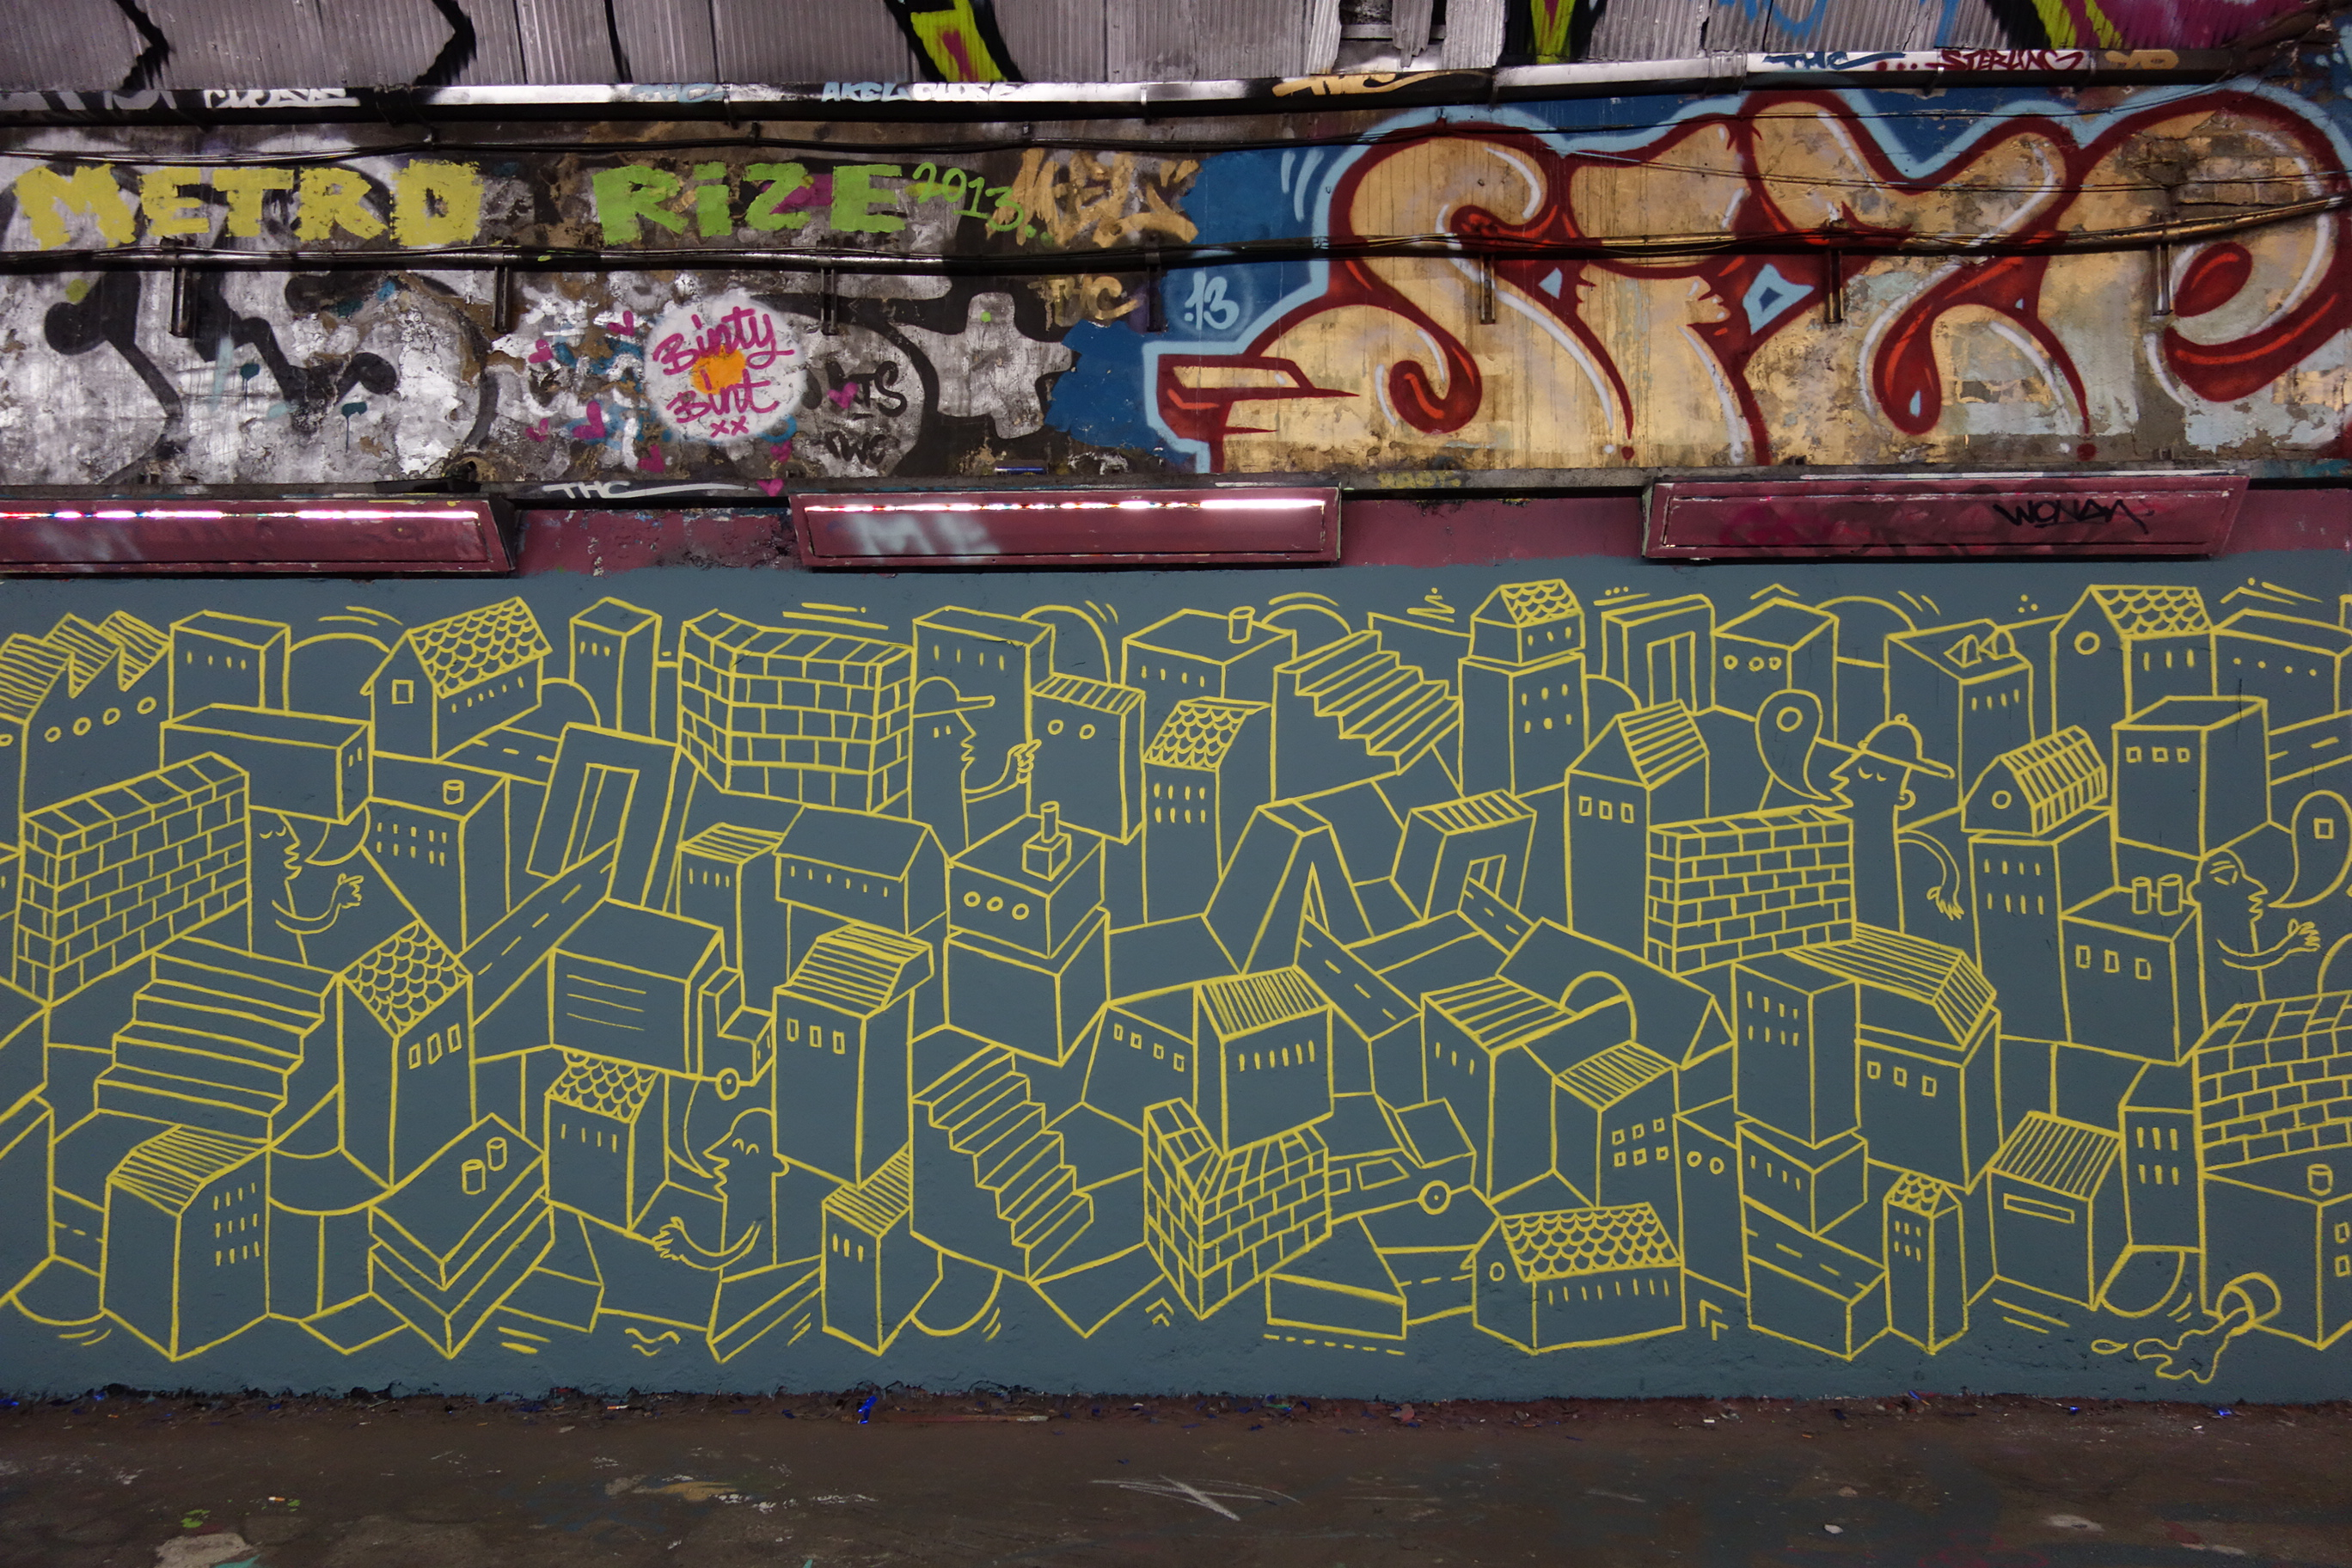 and in particular legal street art, can also be a political act perpetrated by graffiti activists who regard